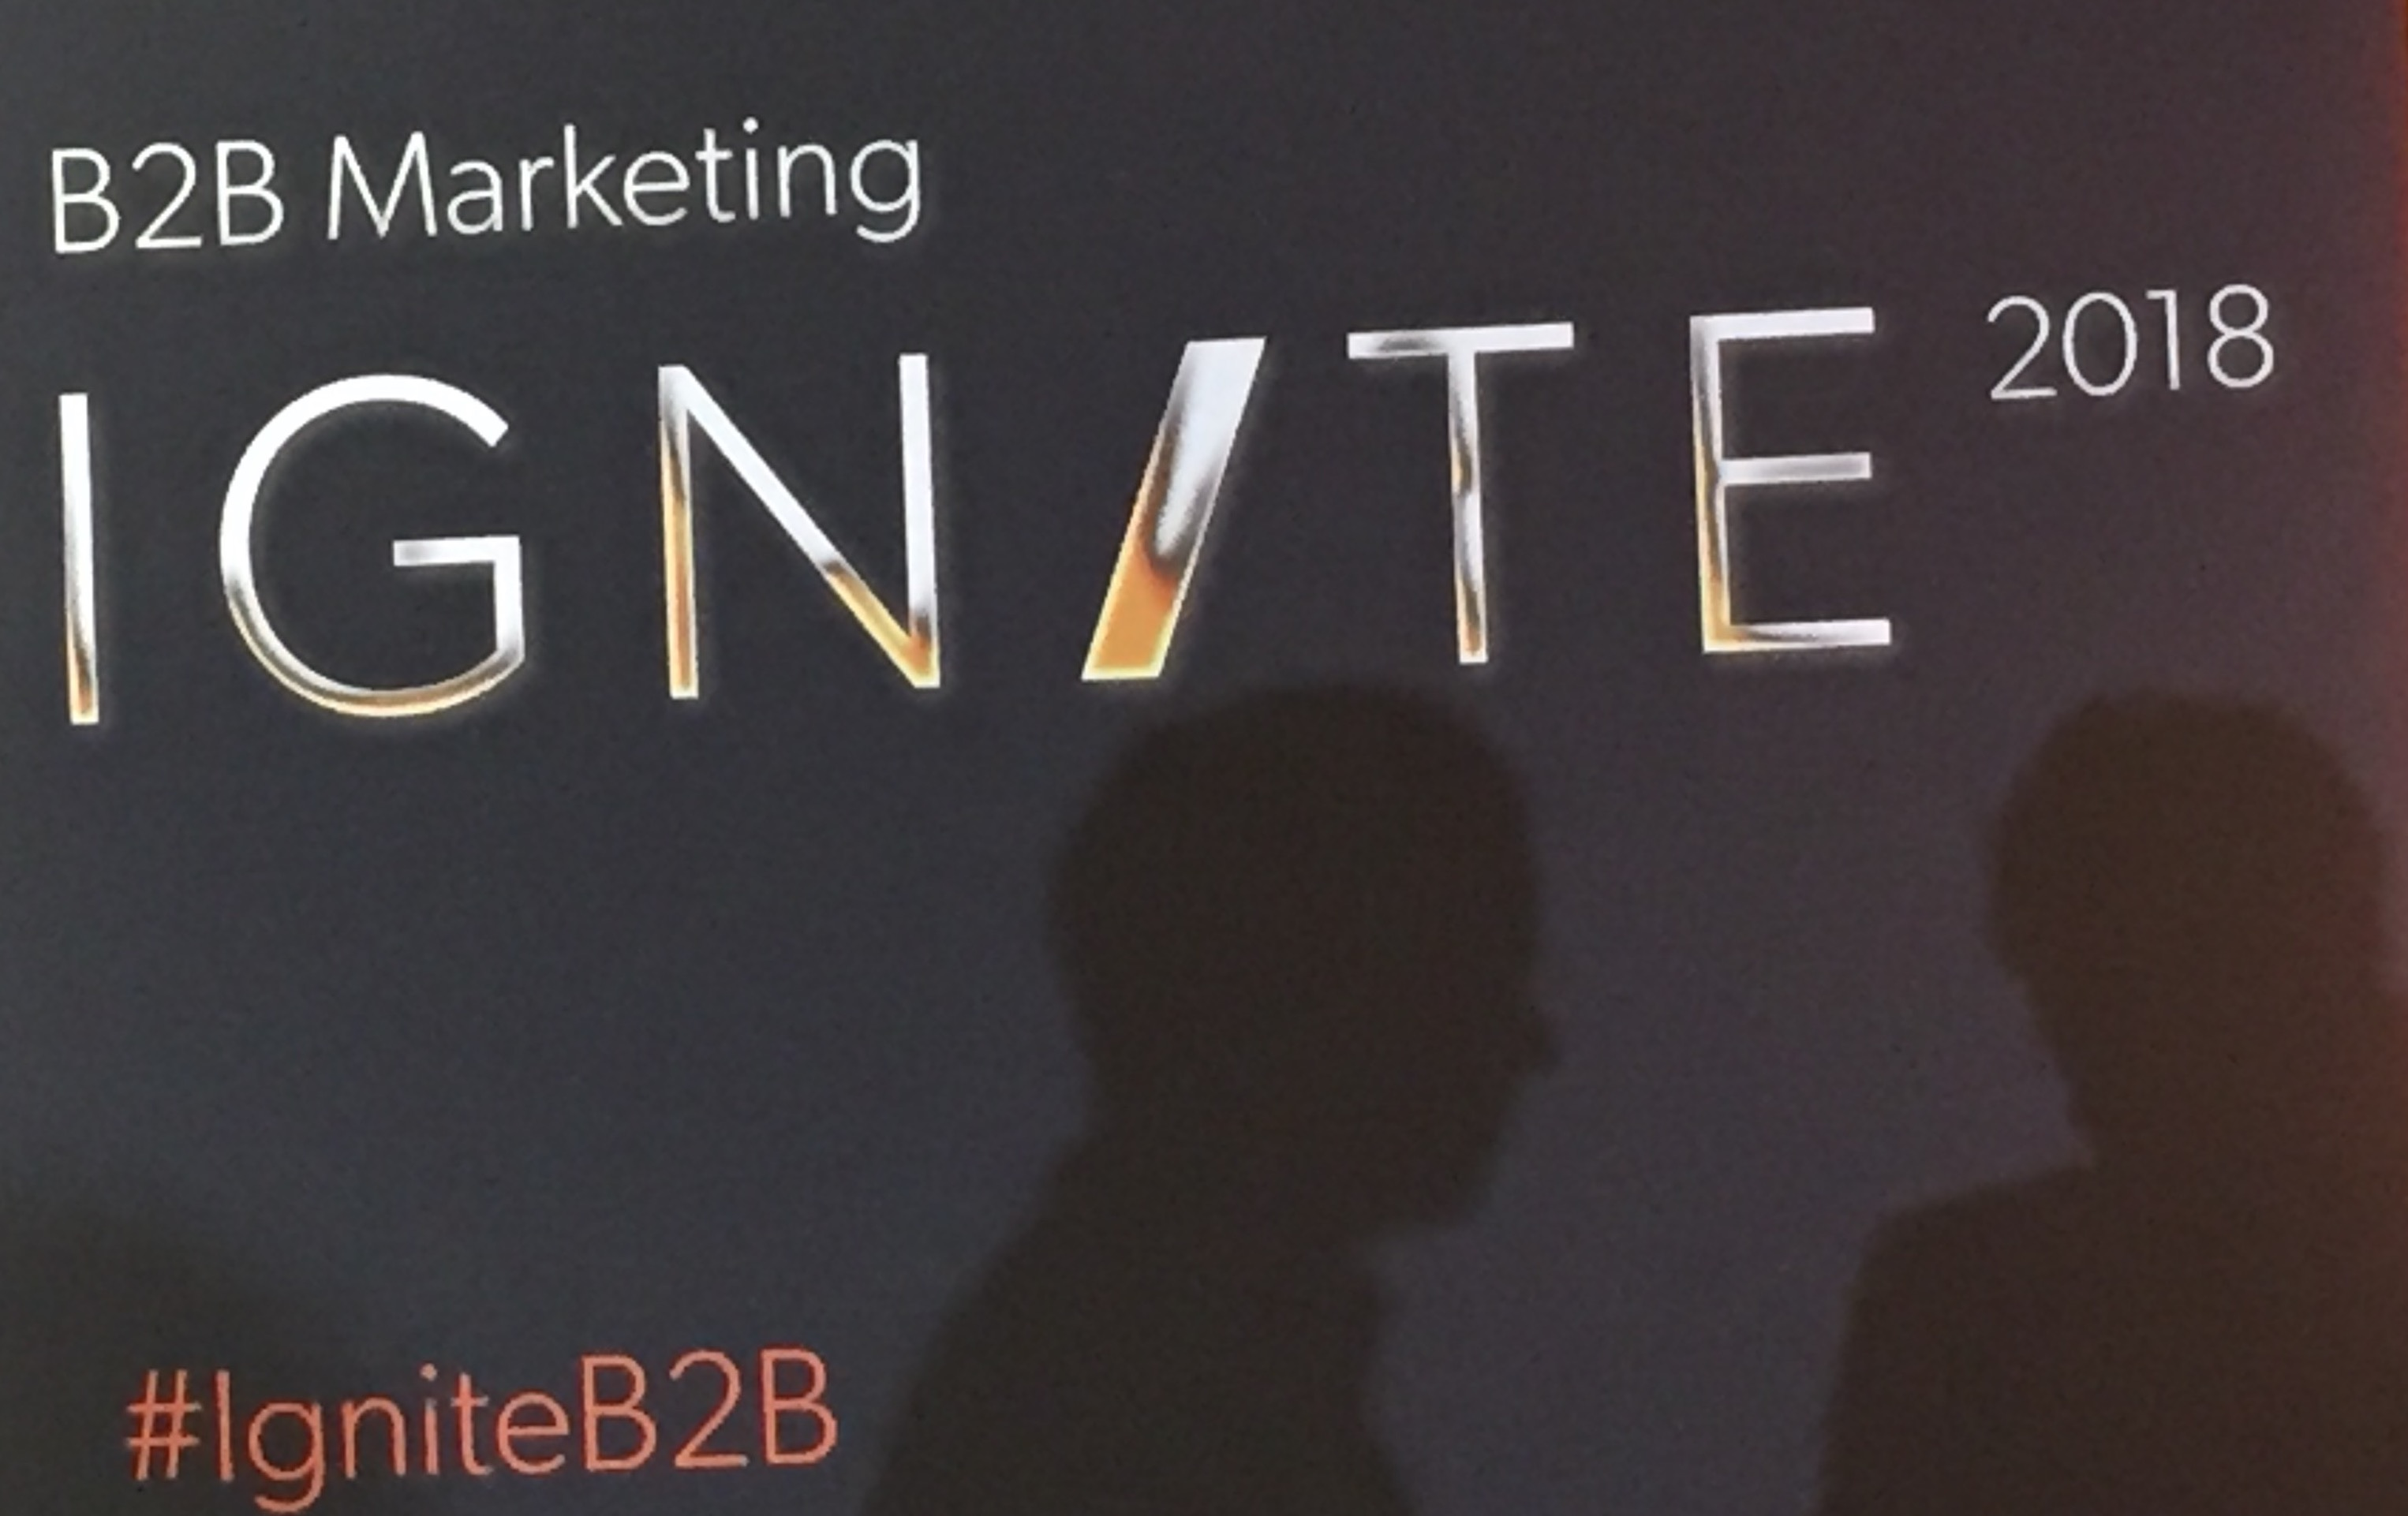 Ignite B2B 2018 Marketing Quotes